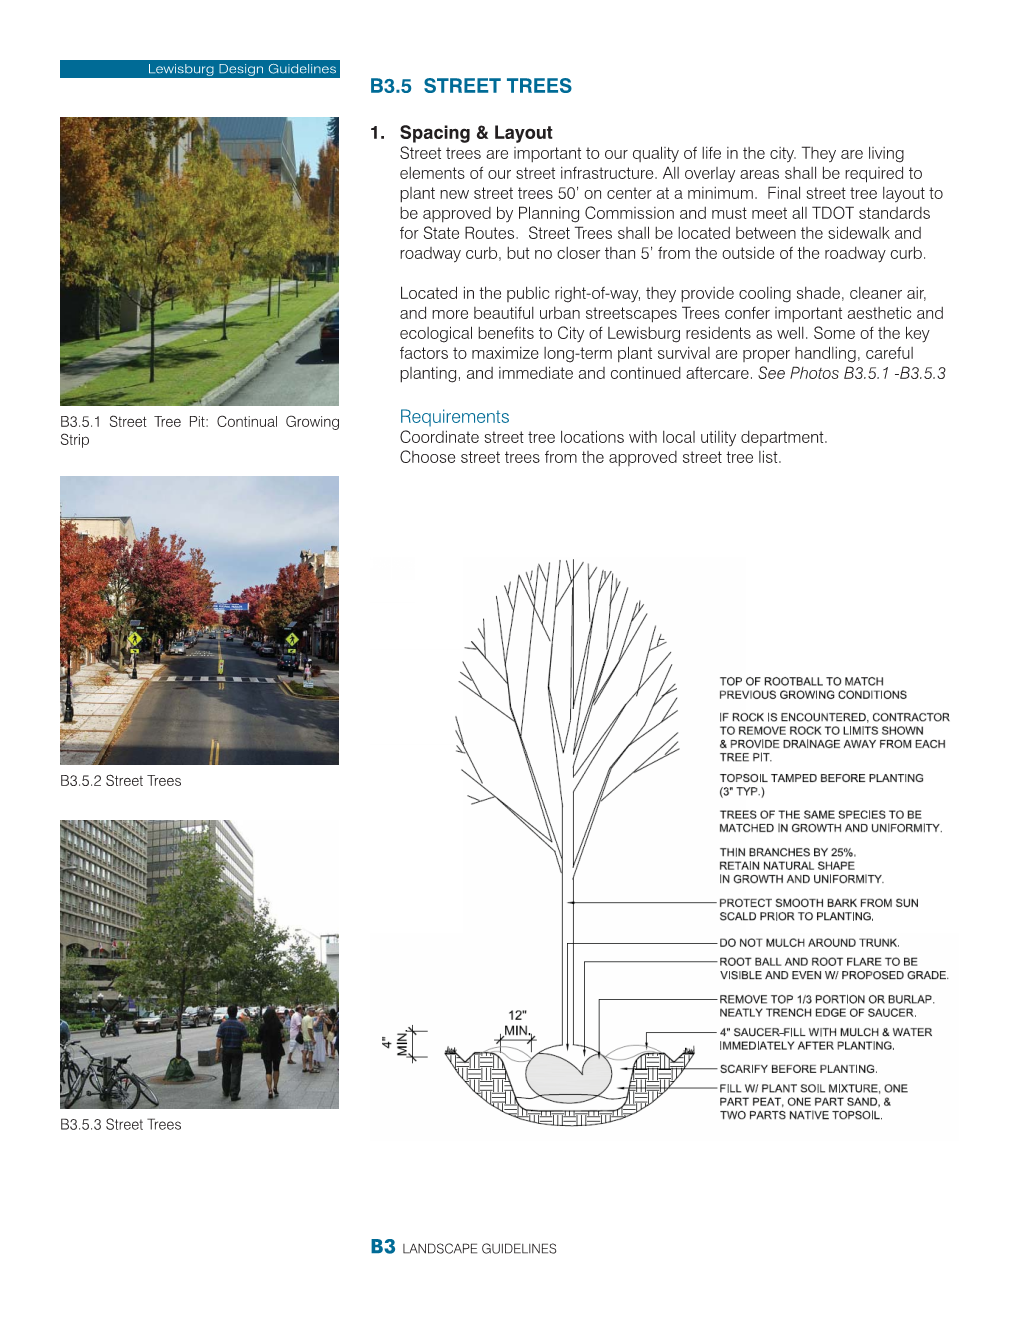 Example of Street Tree Guidelines